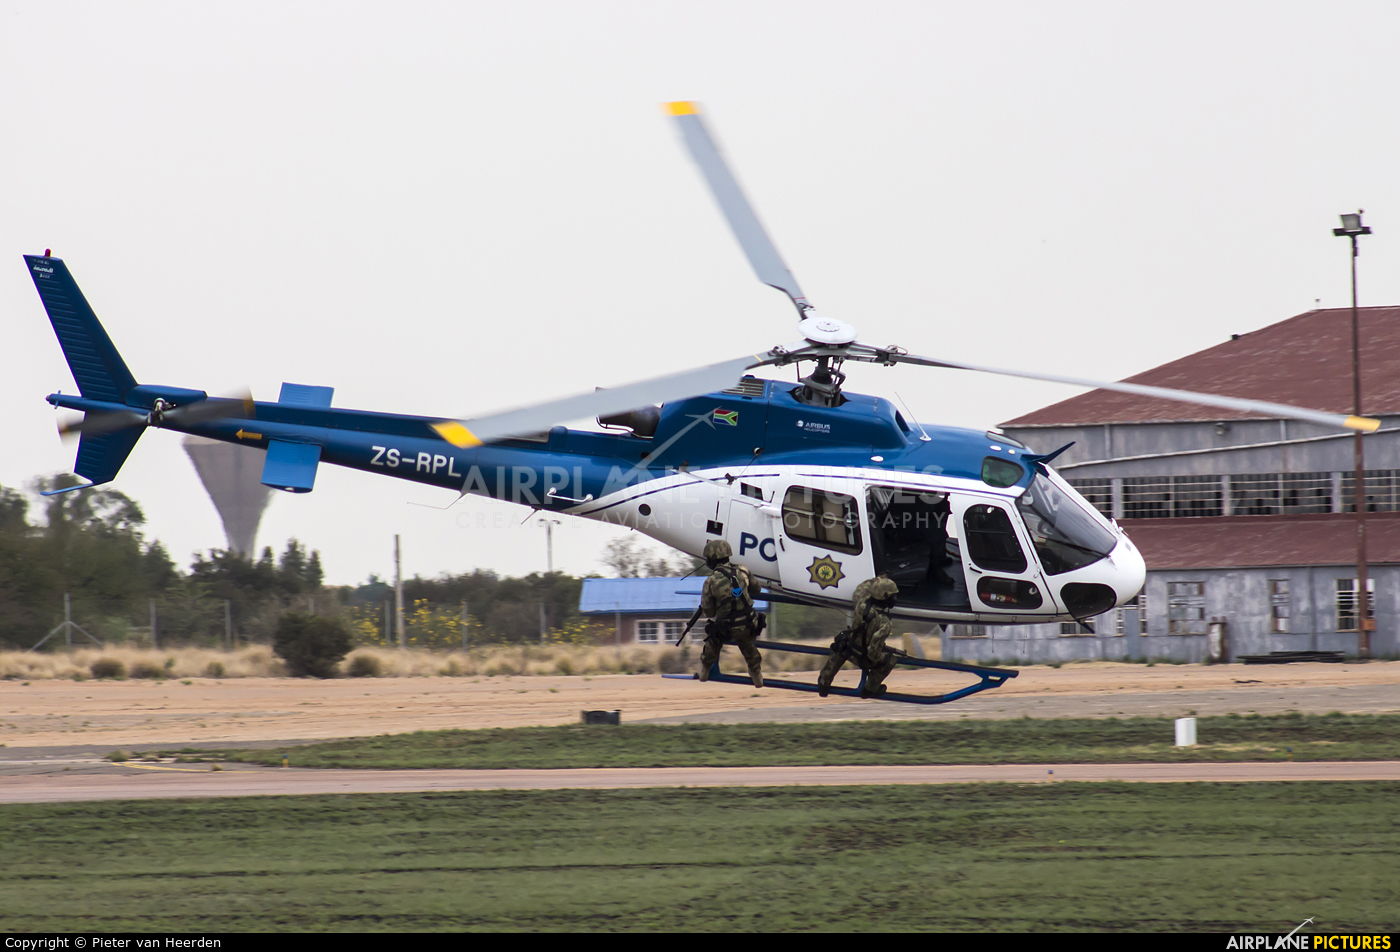 South Africa - Police ZS-RPL aircraft at Waterkloof